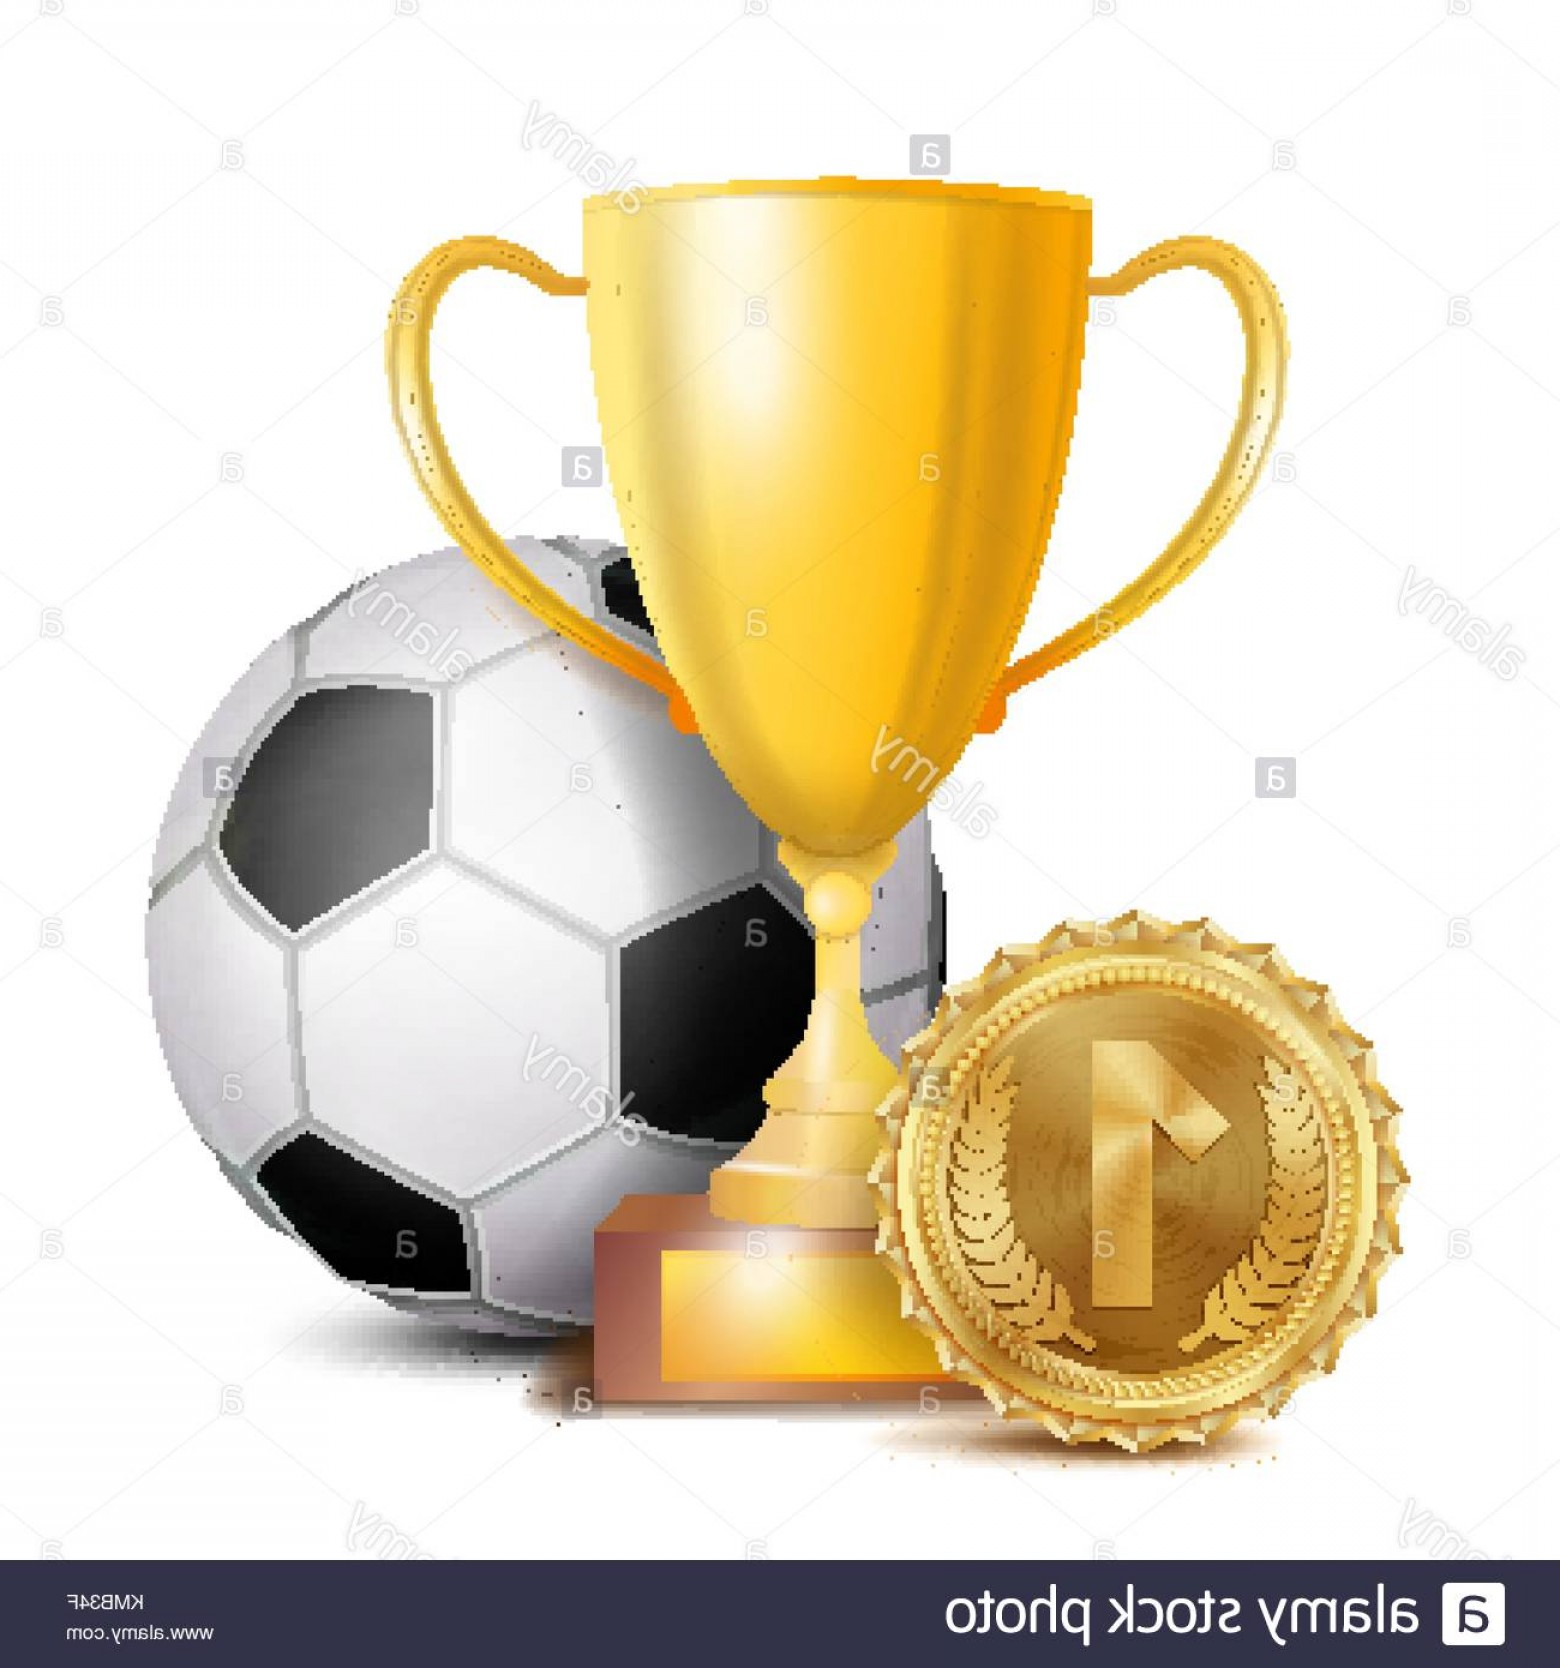 Gold Trophy Vector: Stock Photo Football Award Vector Sport Banner Background Ball Gold Winner Trophy